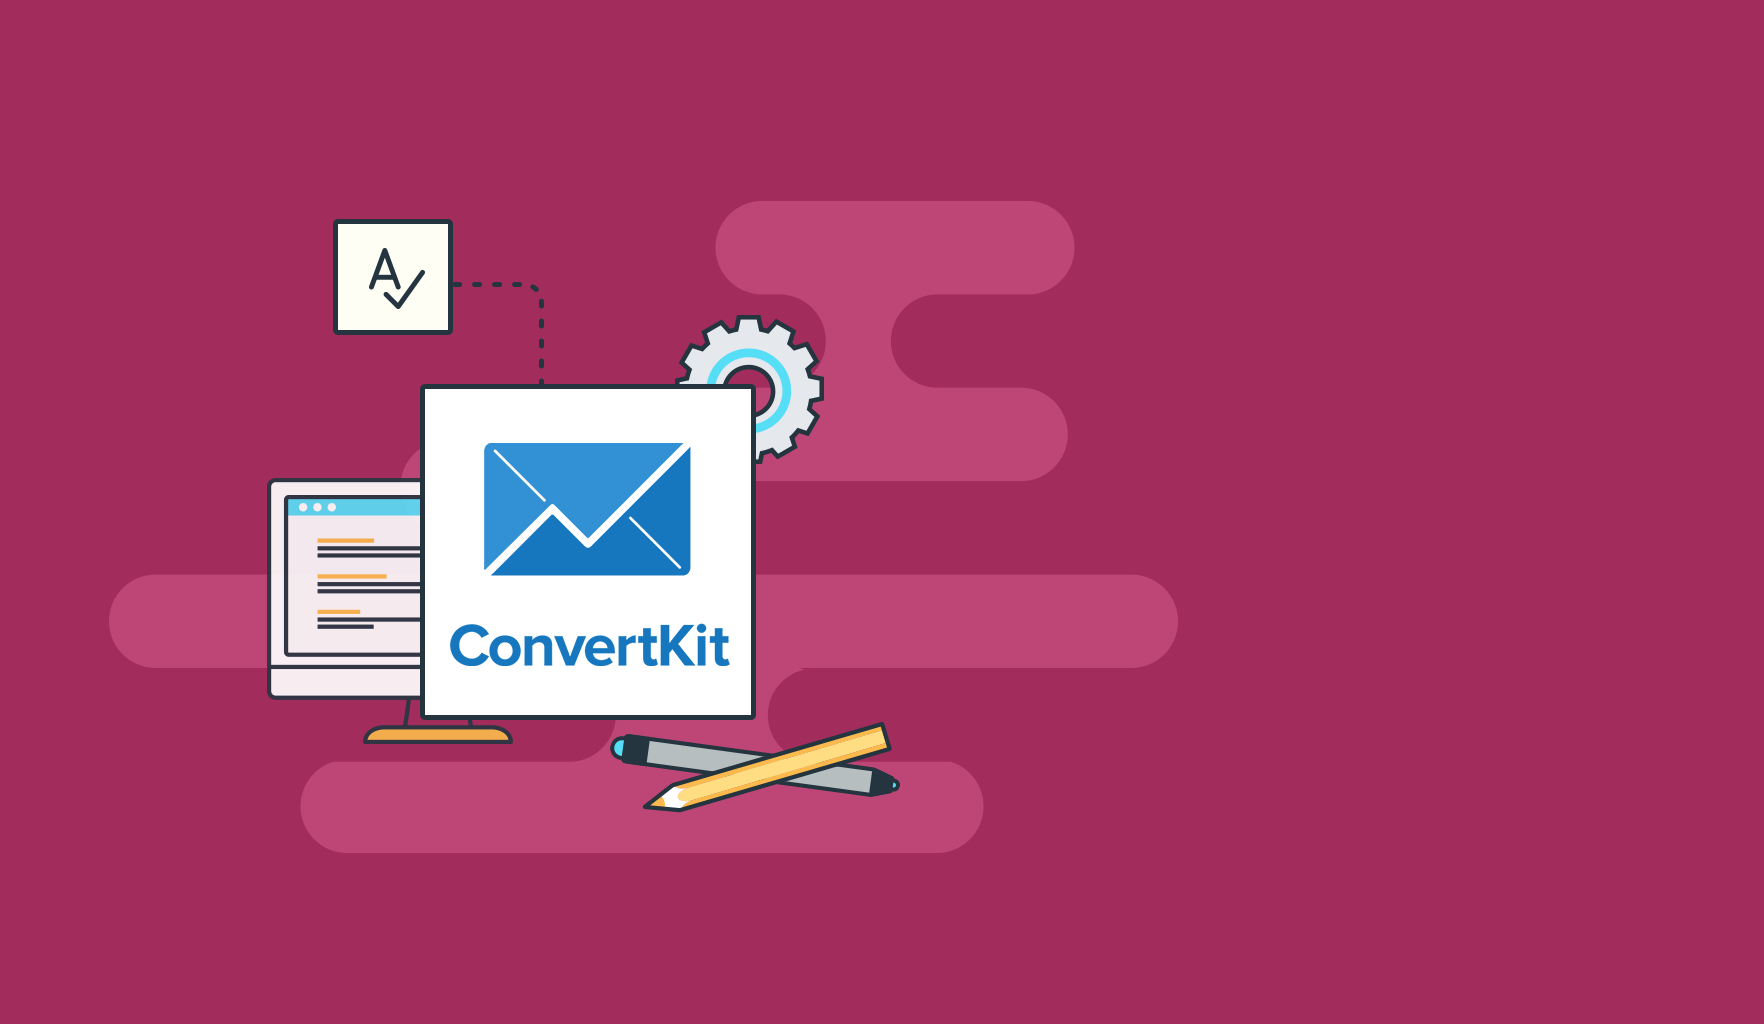 How Do I Find My Api Key Convertkit